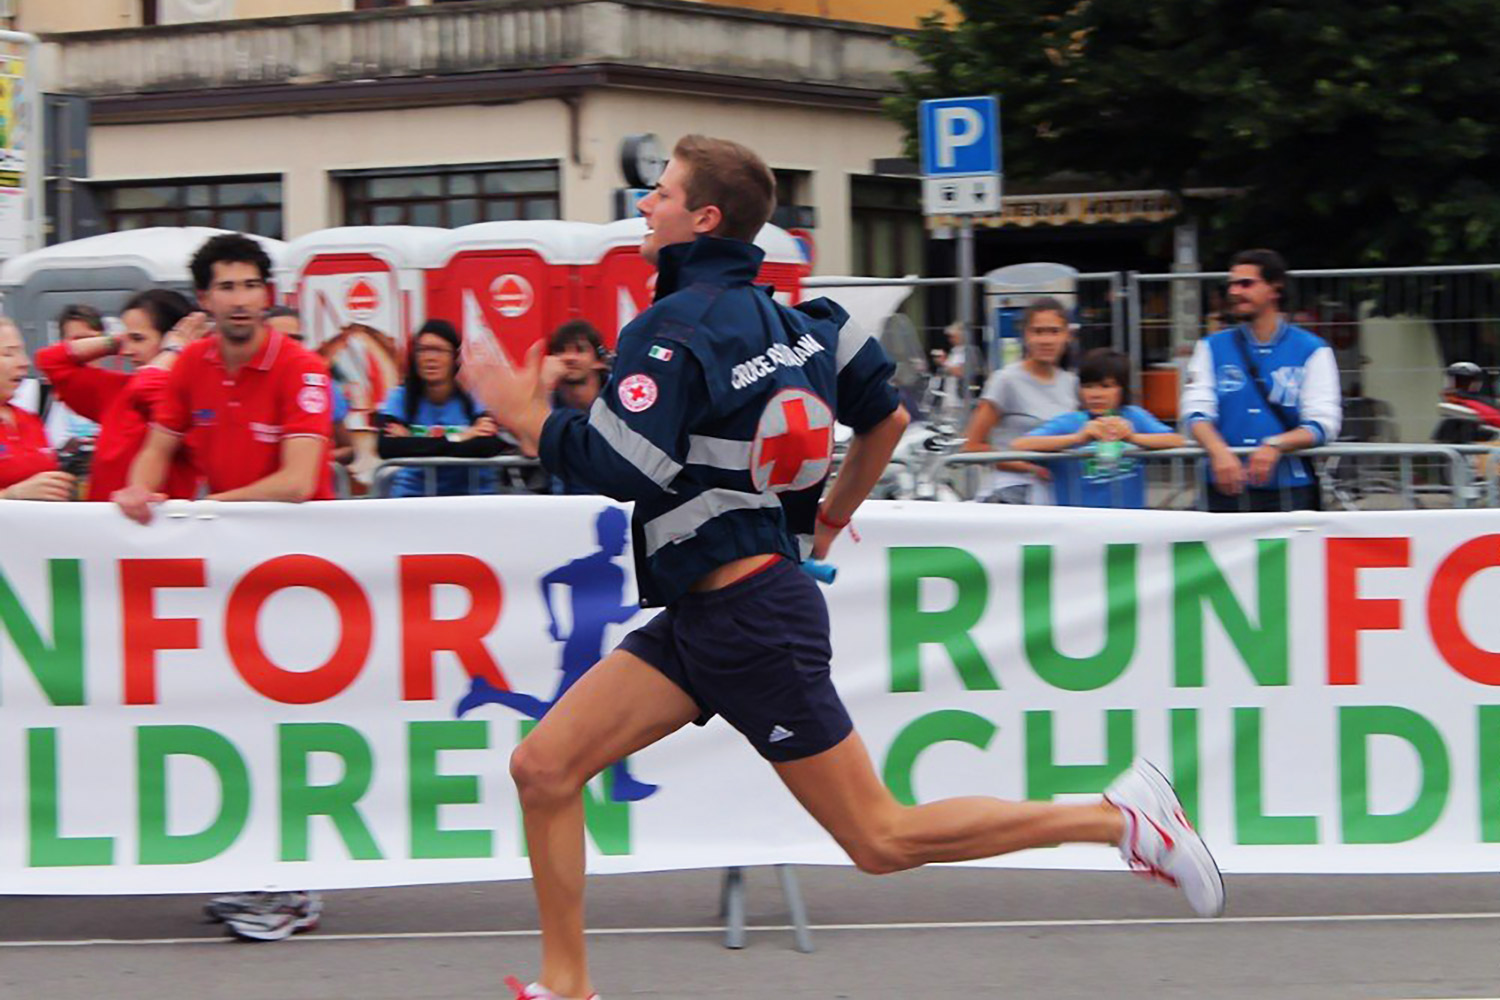 """Alberto Carniel is running for the Italian Red Cross during the """"Run for children"""" competition"""